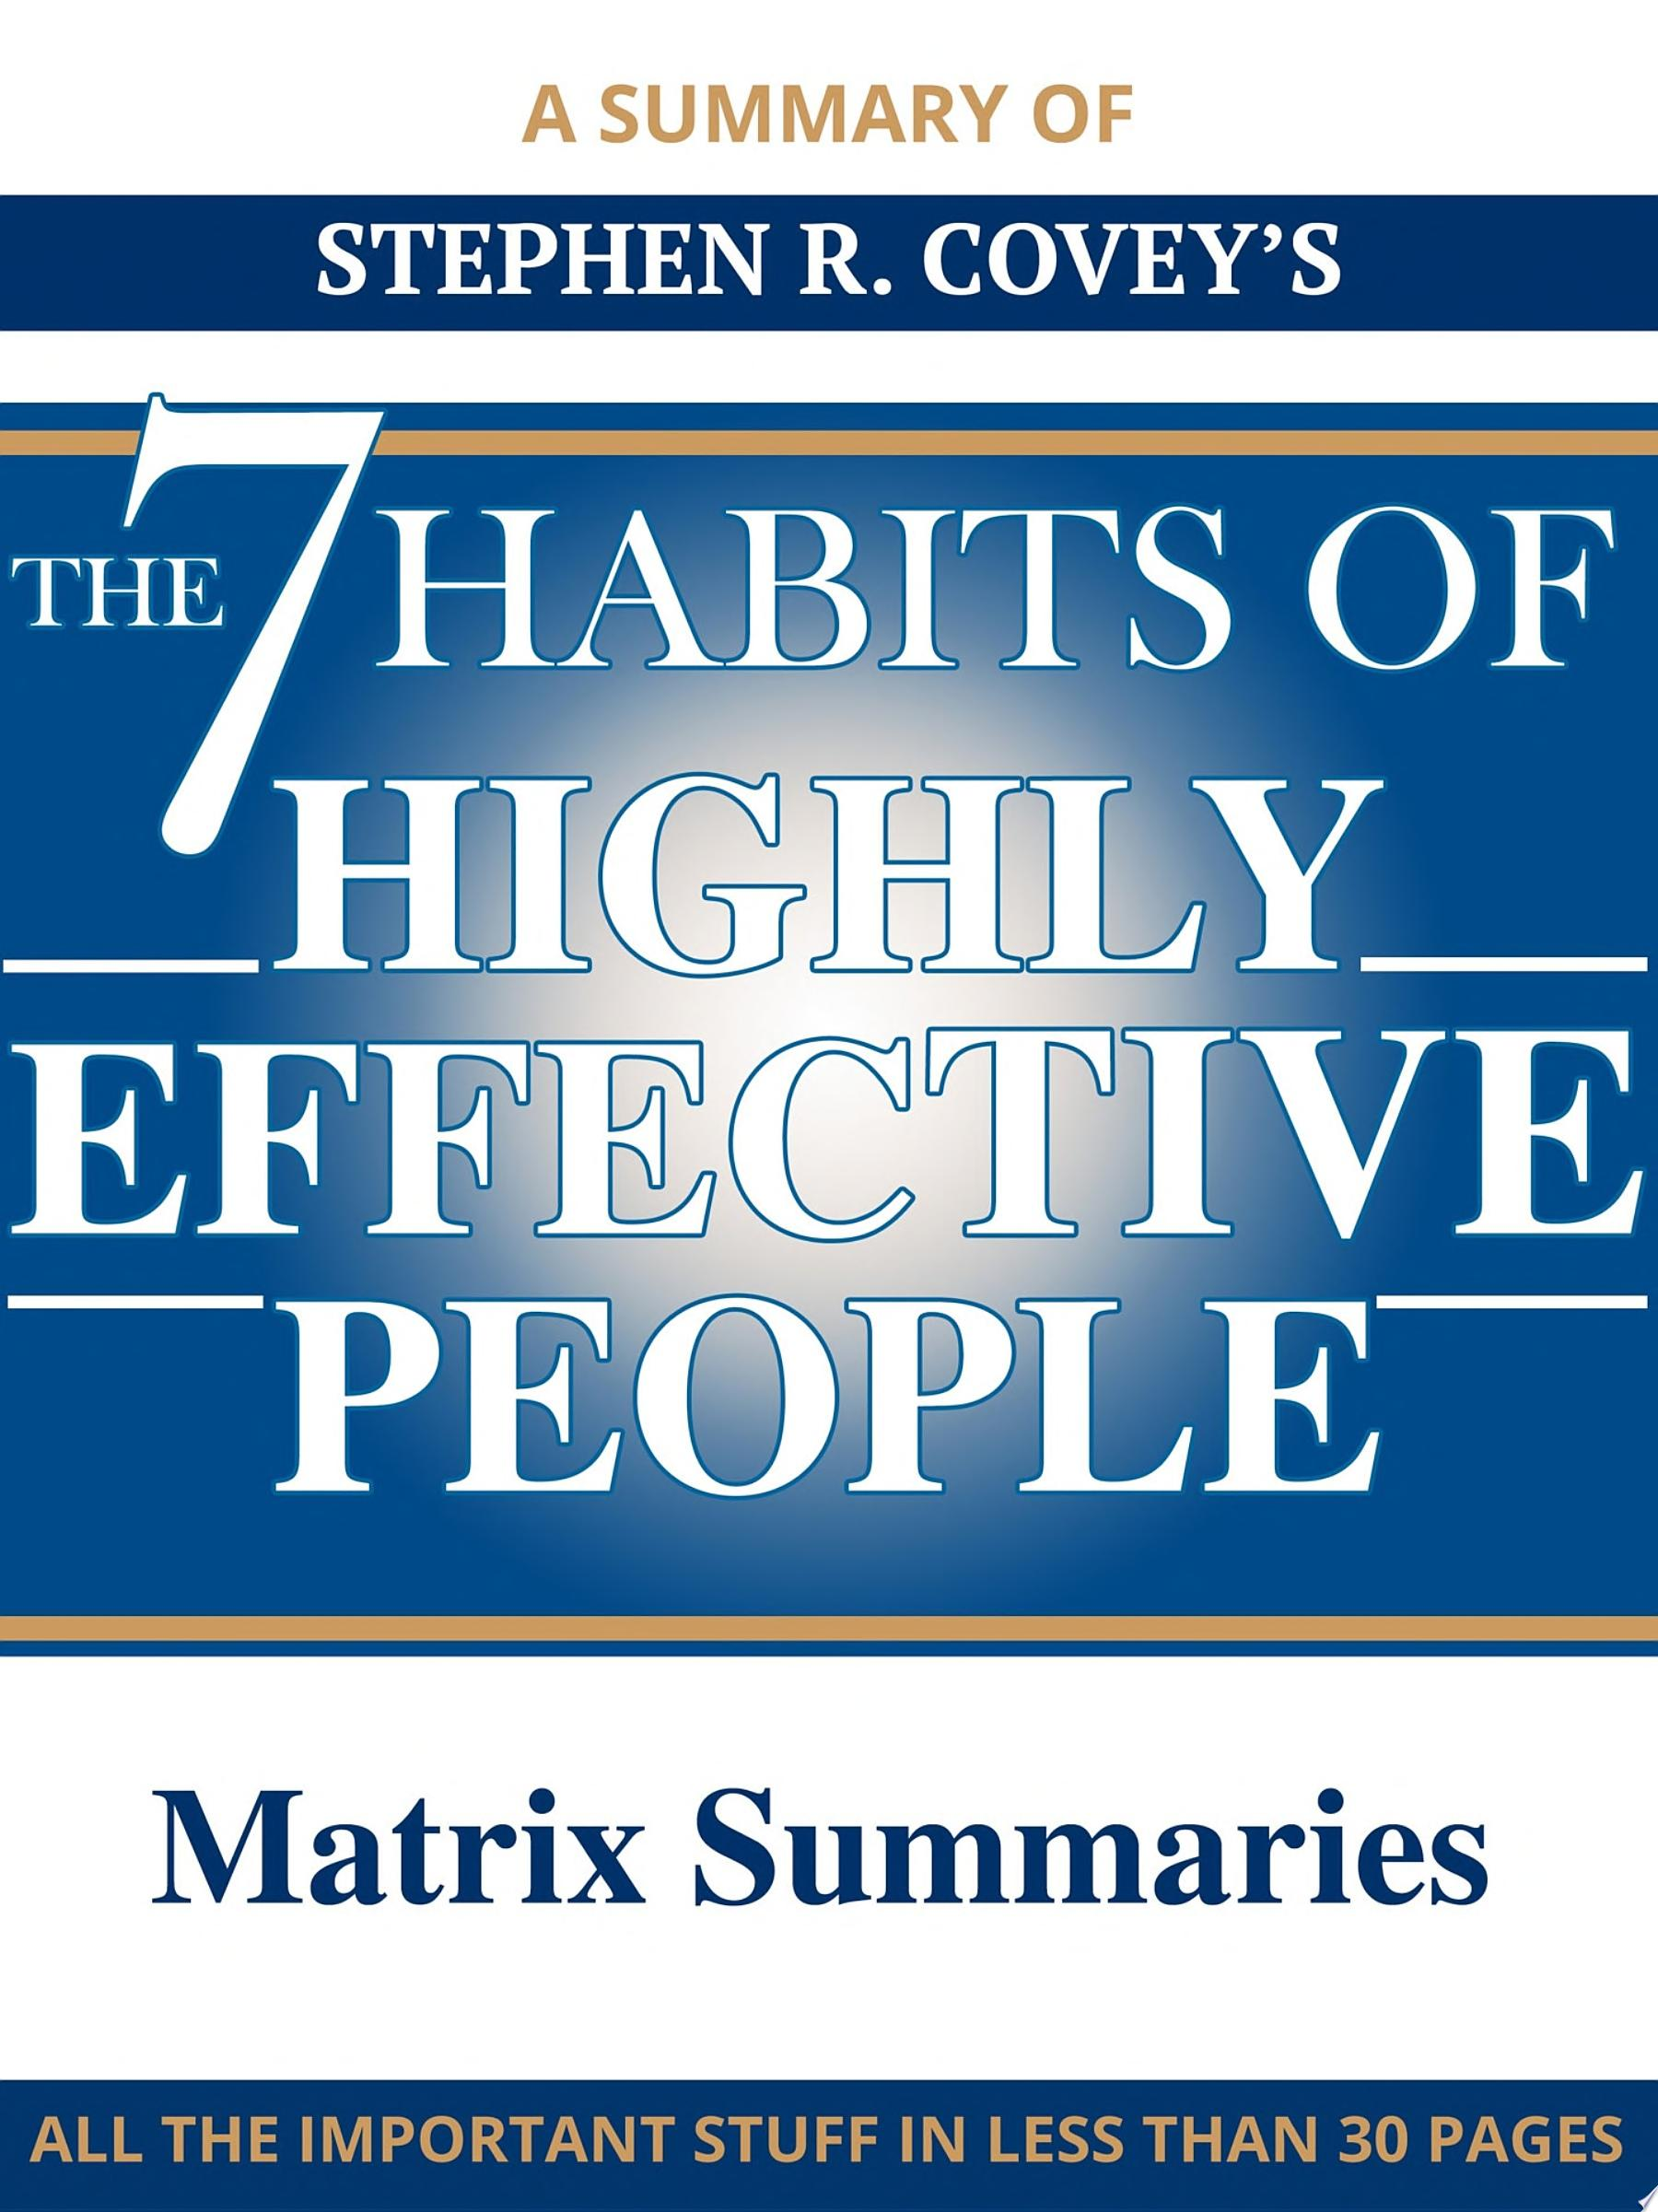 The 7 Habits of Highly Effective People   A Summary